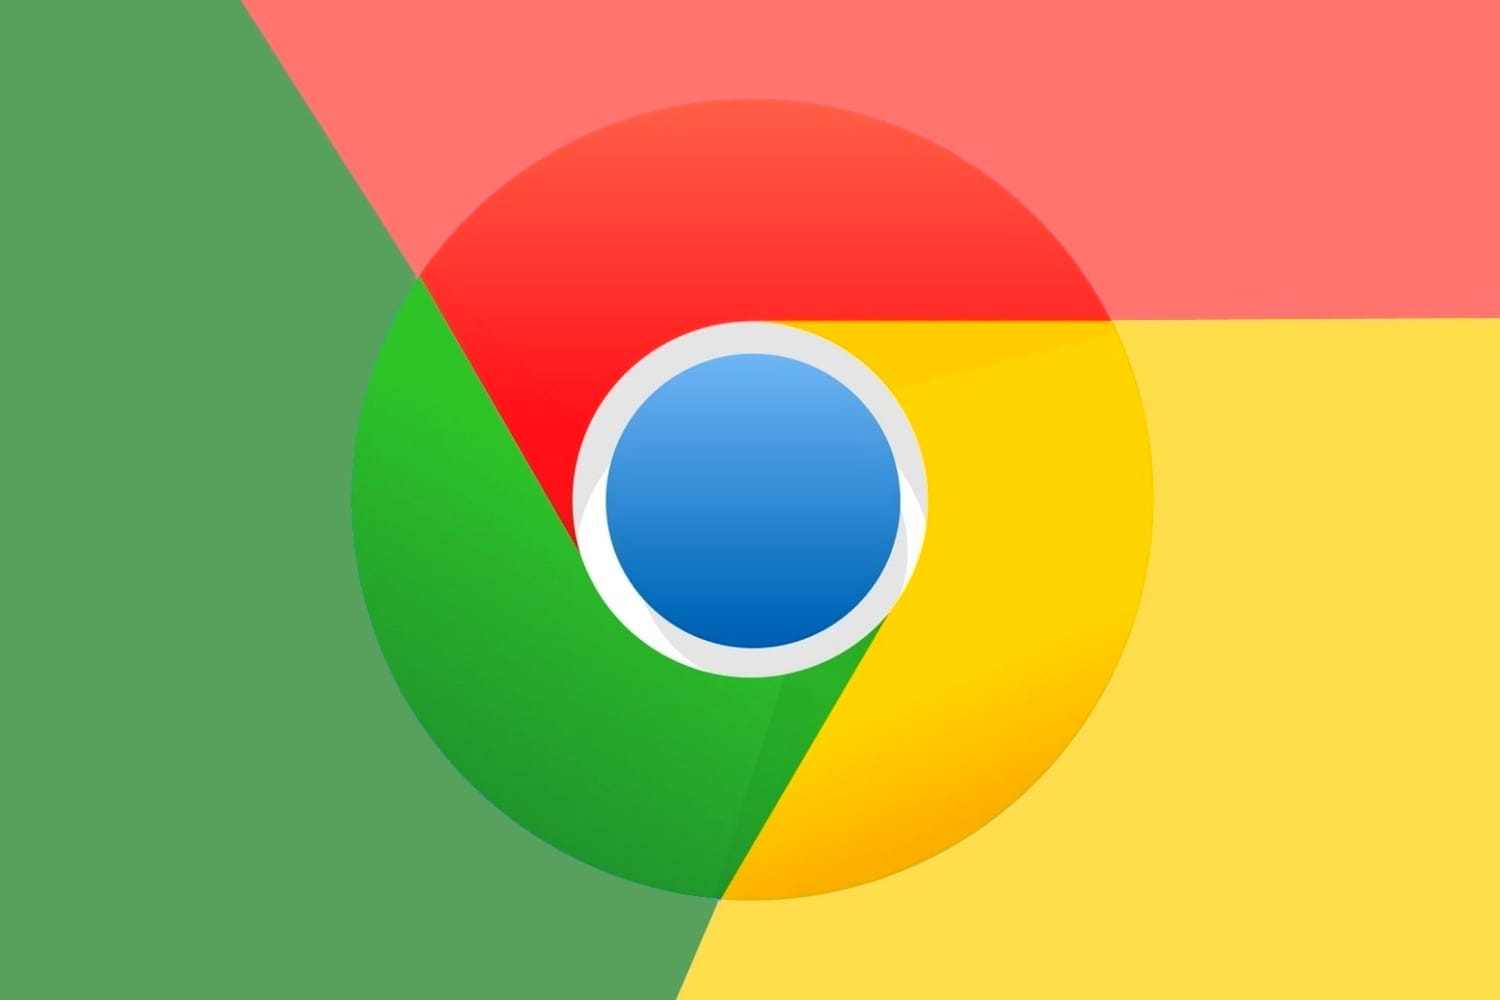 Chrome makes noisy tab icon mainstream in latest browser